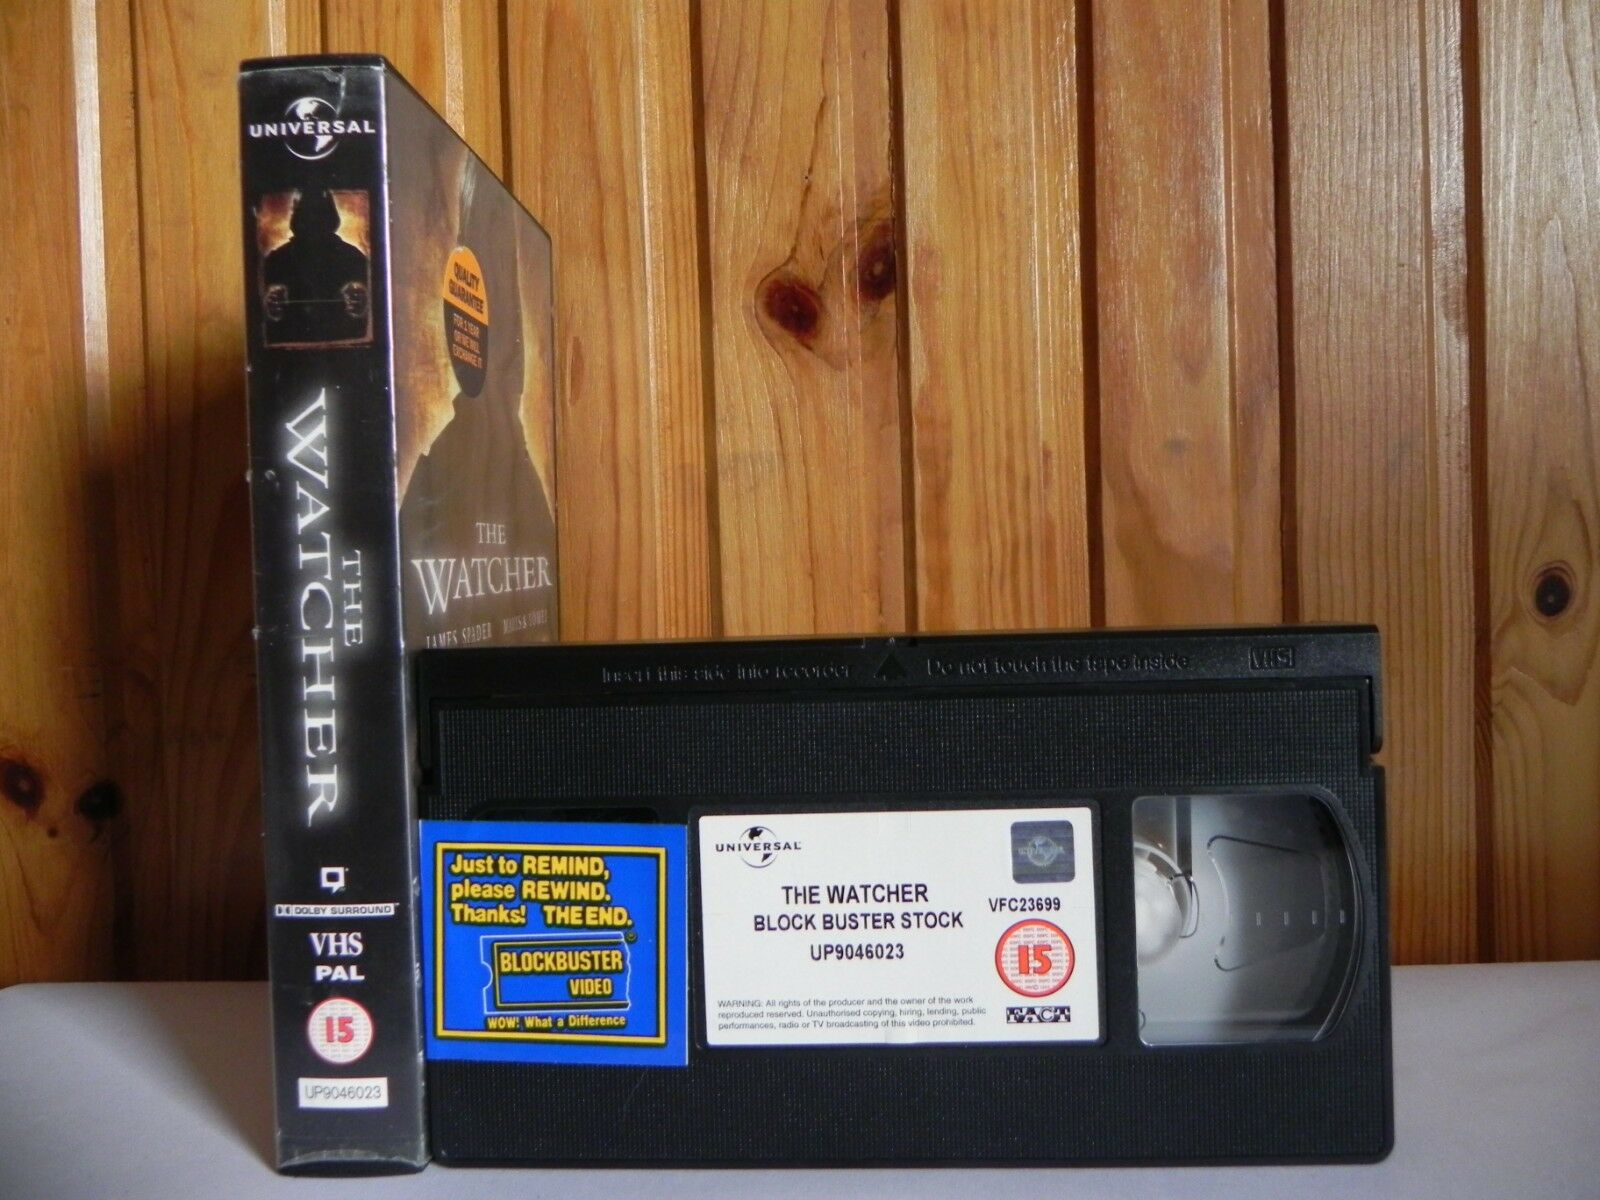 The Watcher - Large Box - Universal - Thriller - Ex-Rental - Marisa Tomei - VHS